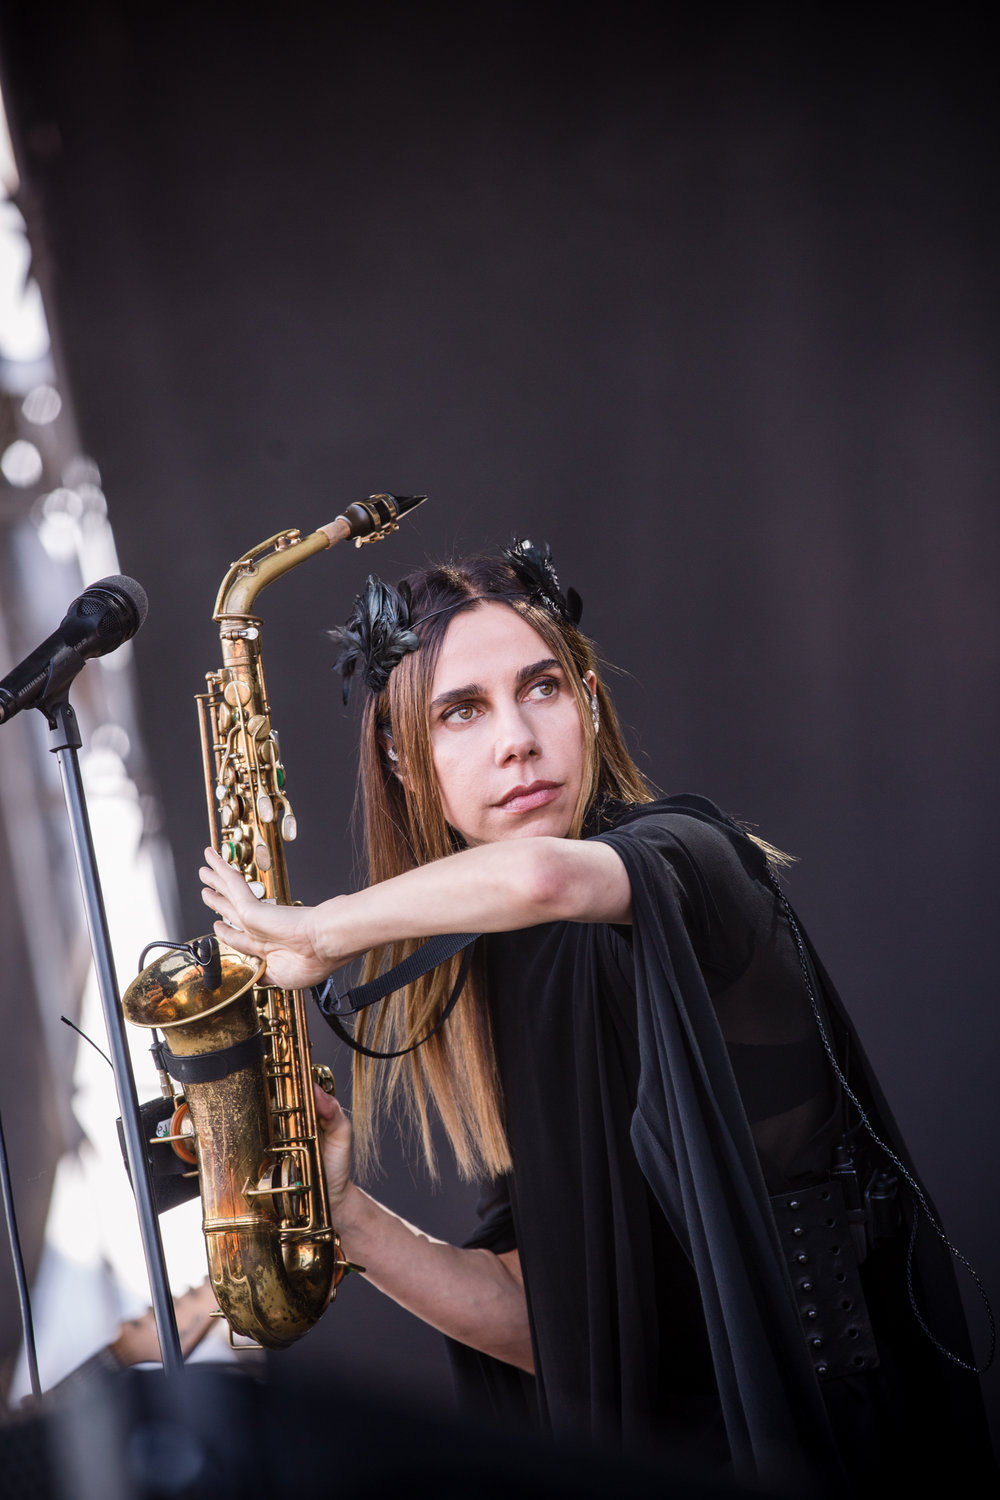 PJHarvey_ForecastleFestival_Day_3_CortneyArmitage_126A8378101.jpg